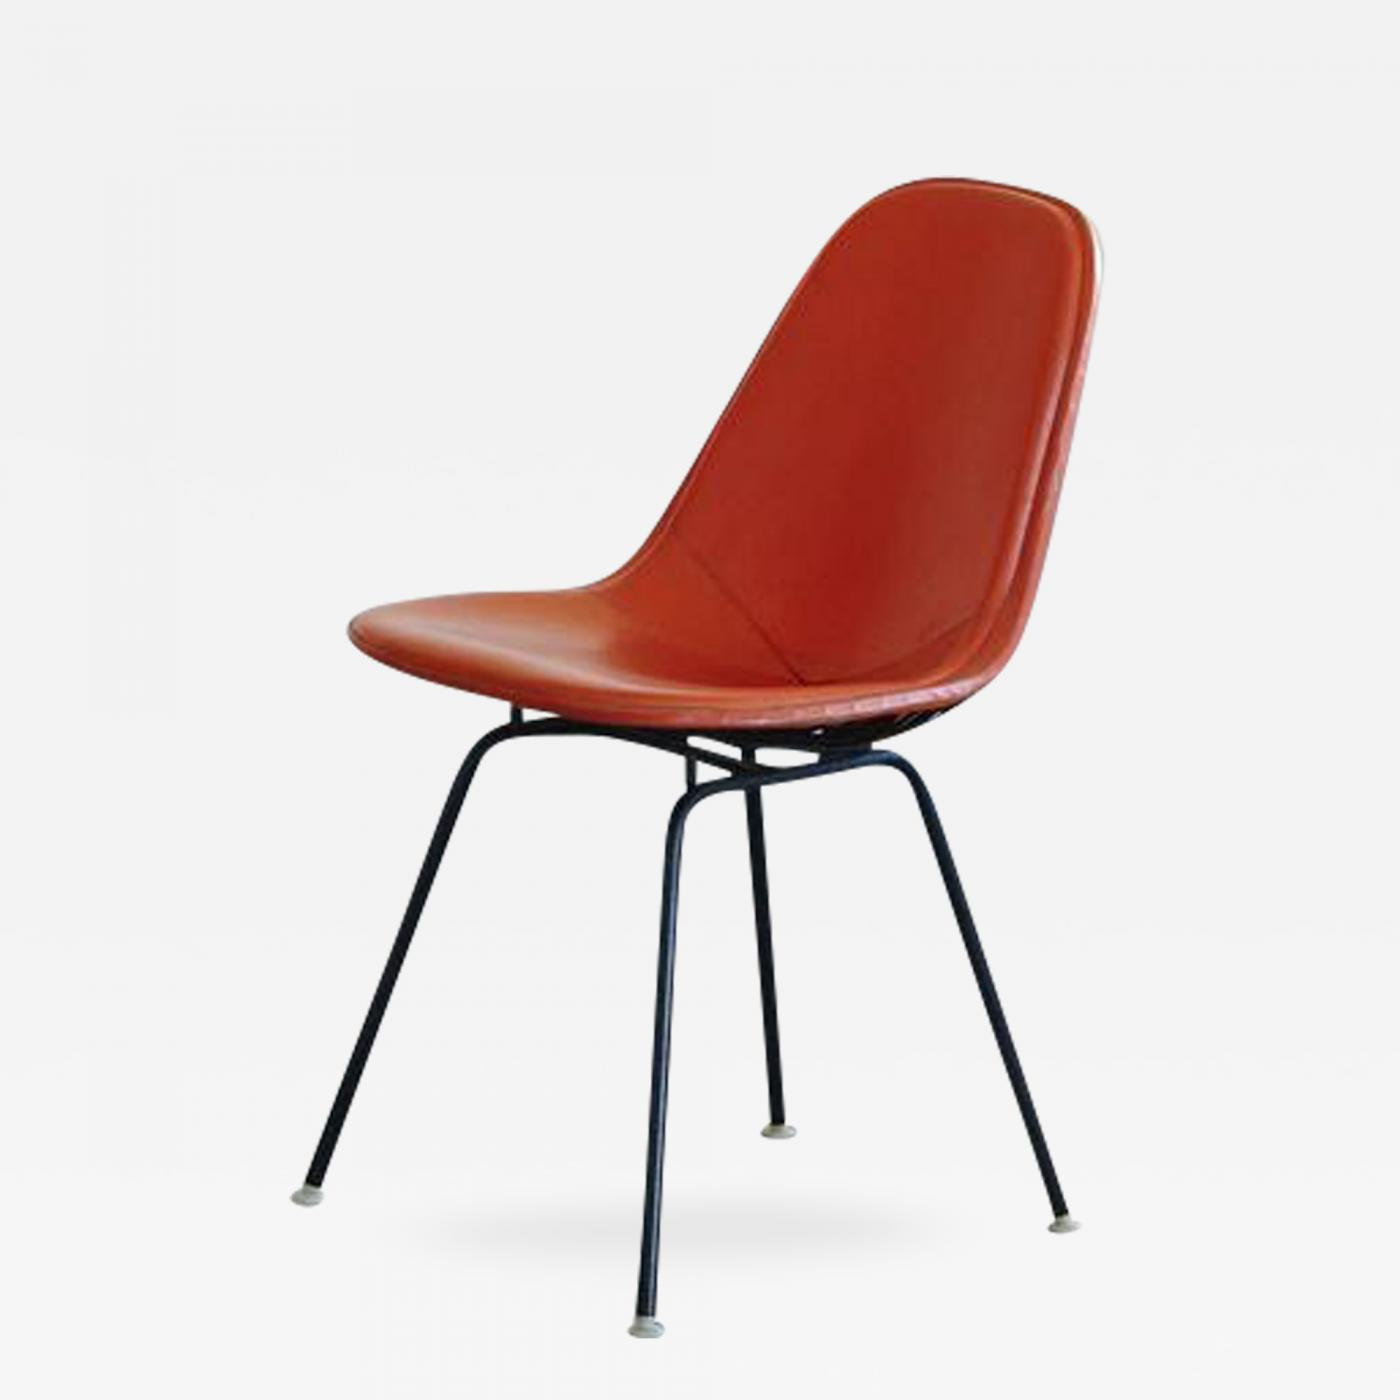 charles ray eames original eames dkx 1 side chair in orange leather for herman miller 1960s. Black Bedroom Furniture Sets. Home Design Ideas